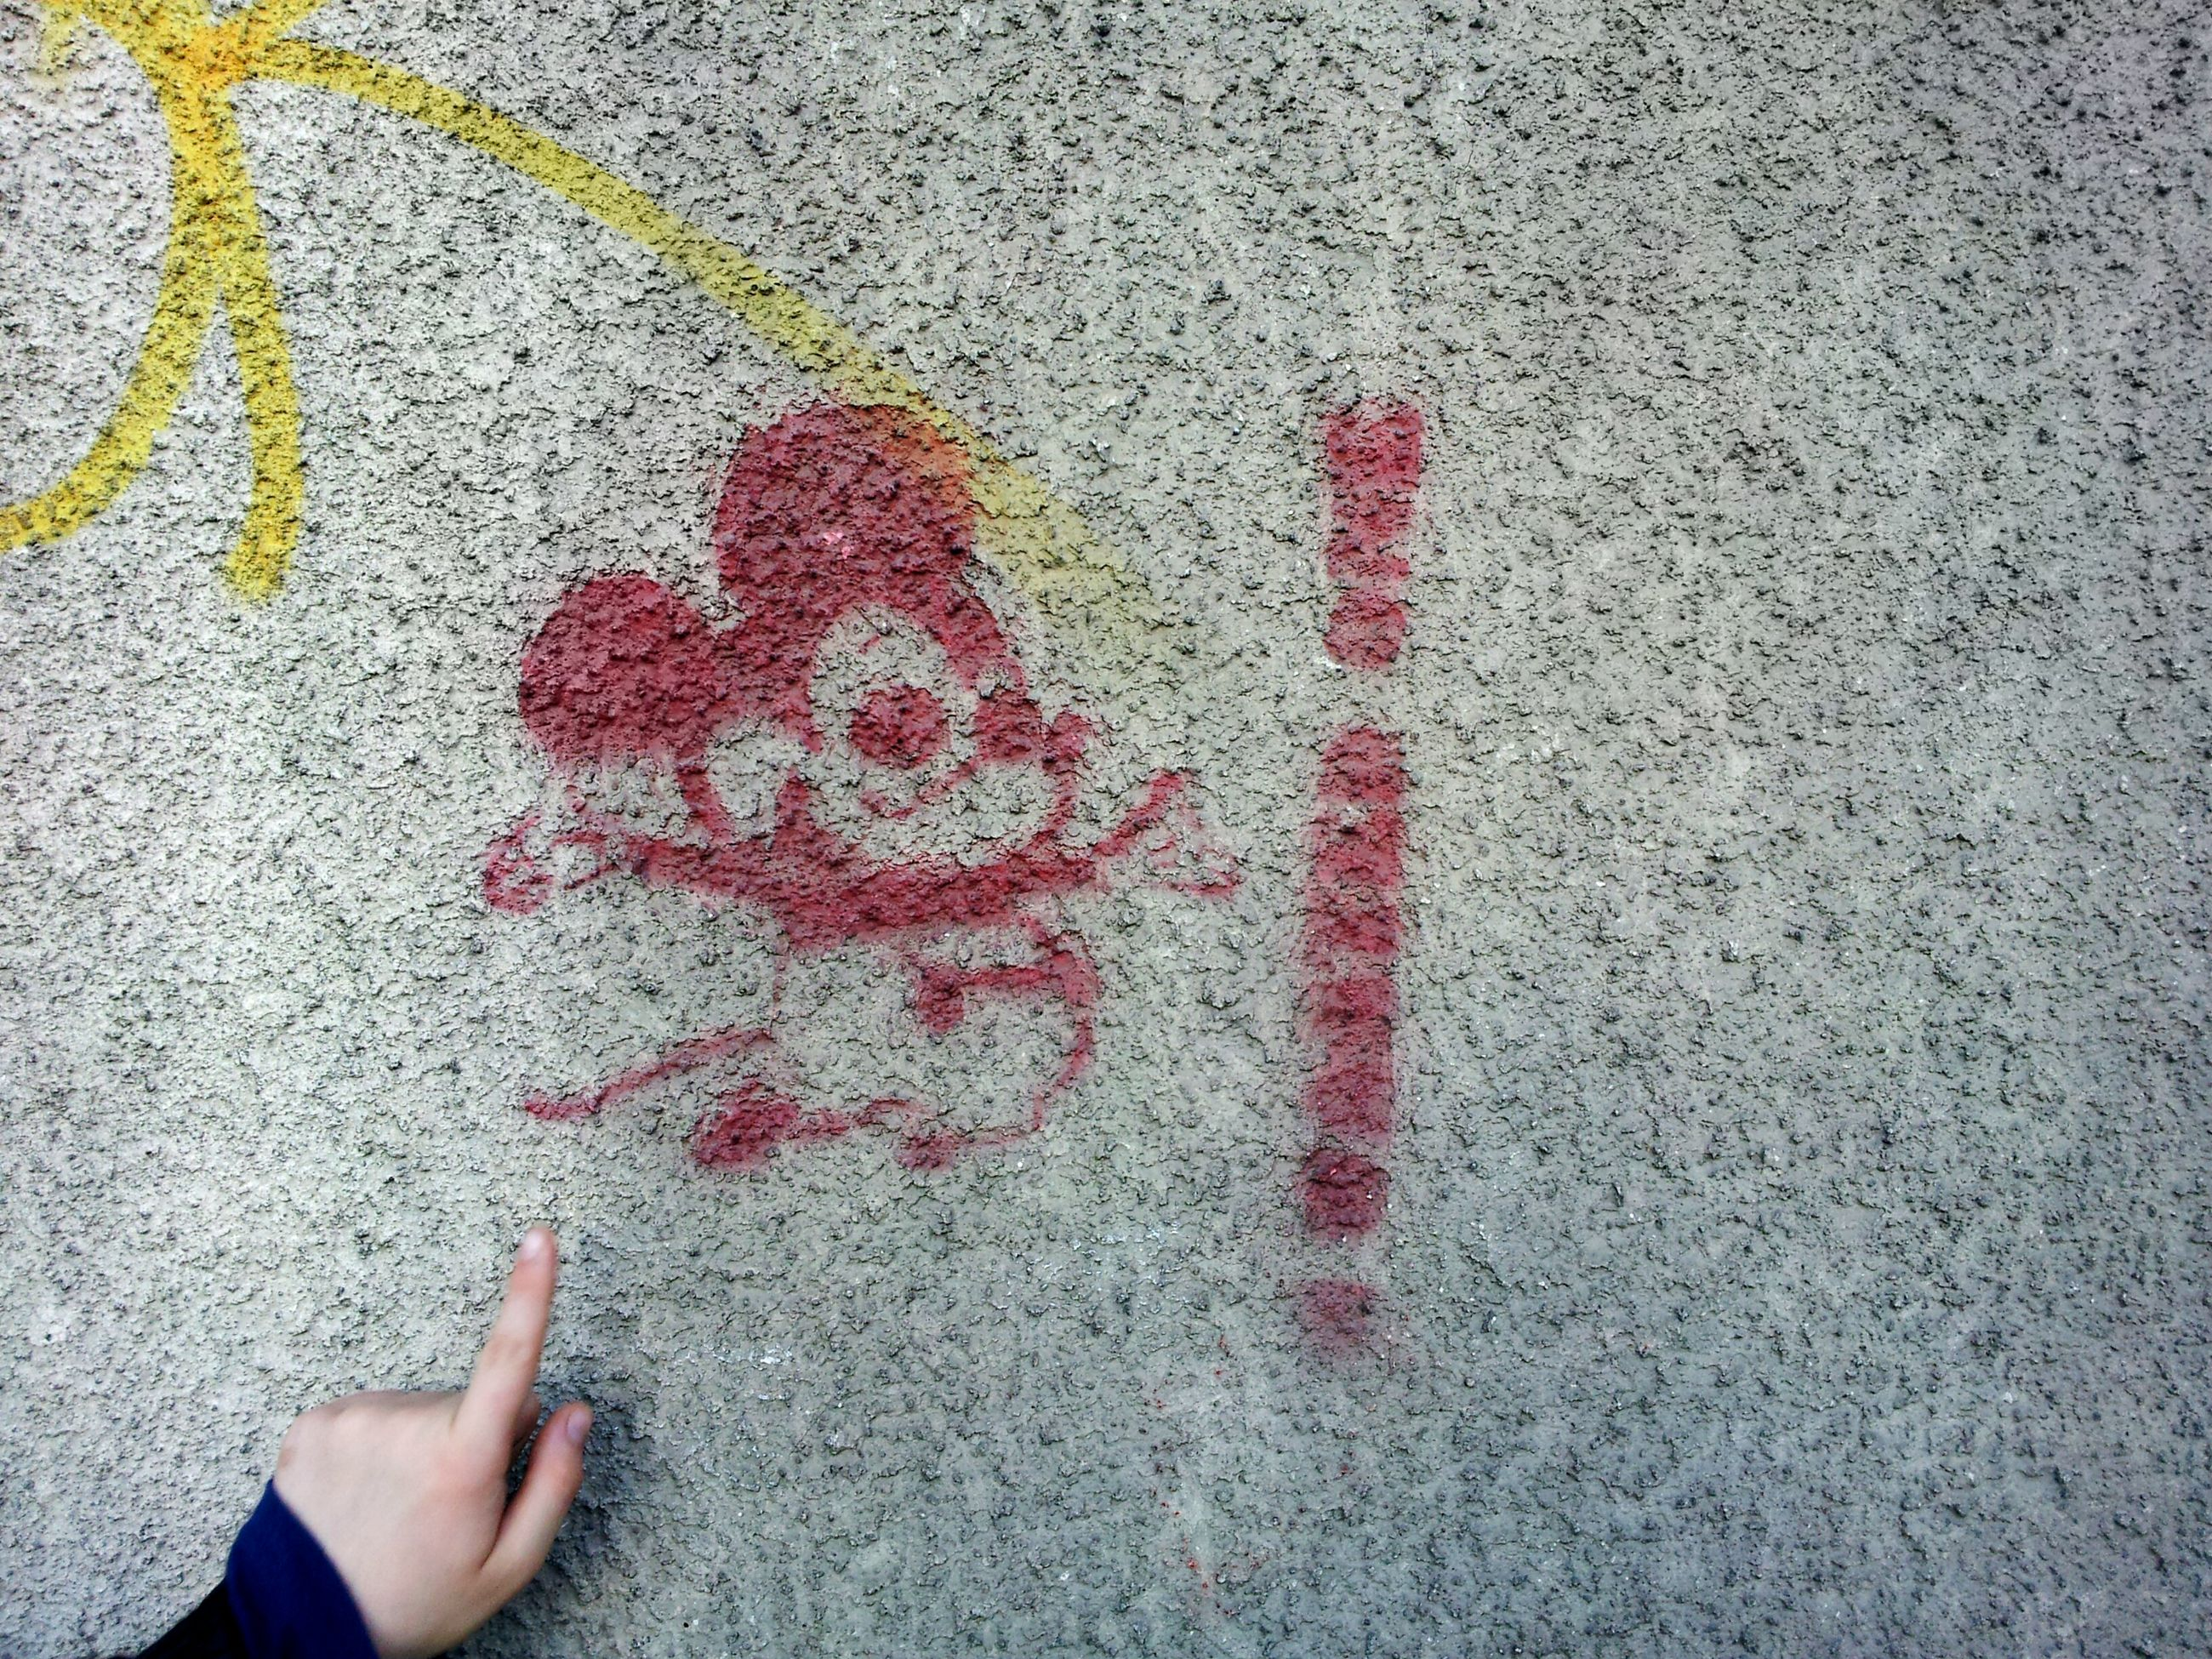 communication, high angle view, street, text, person, part of, western script, textured, unrecognizable person, lifestyles, asphalt, road, heart shape, close-up, road marking, creativity, day